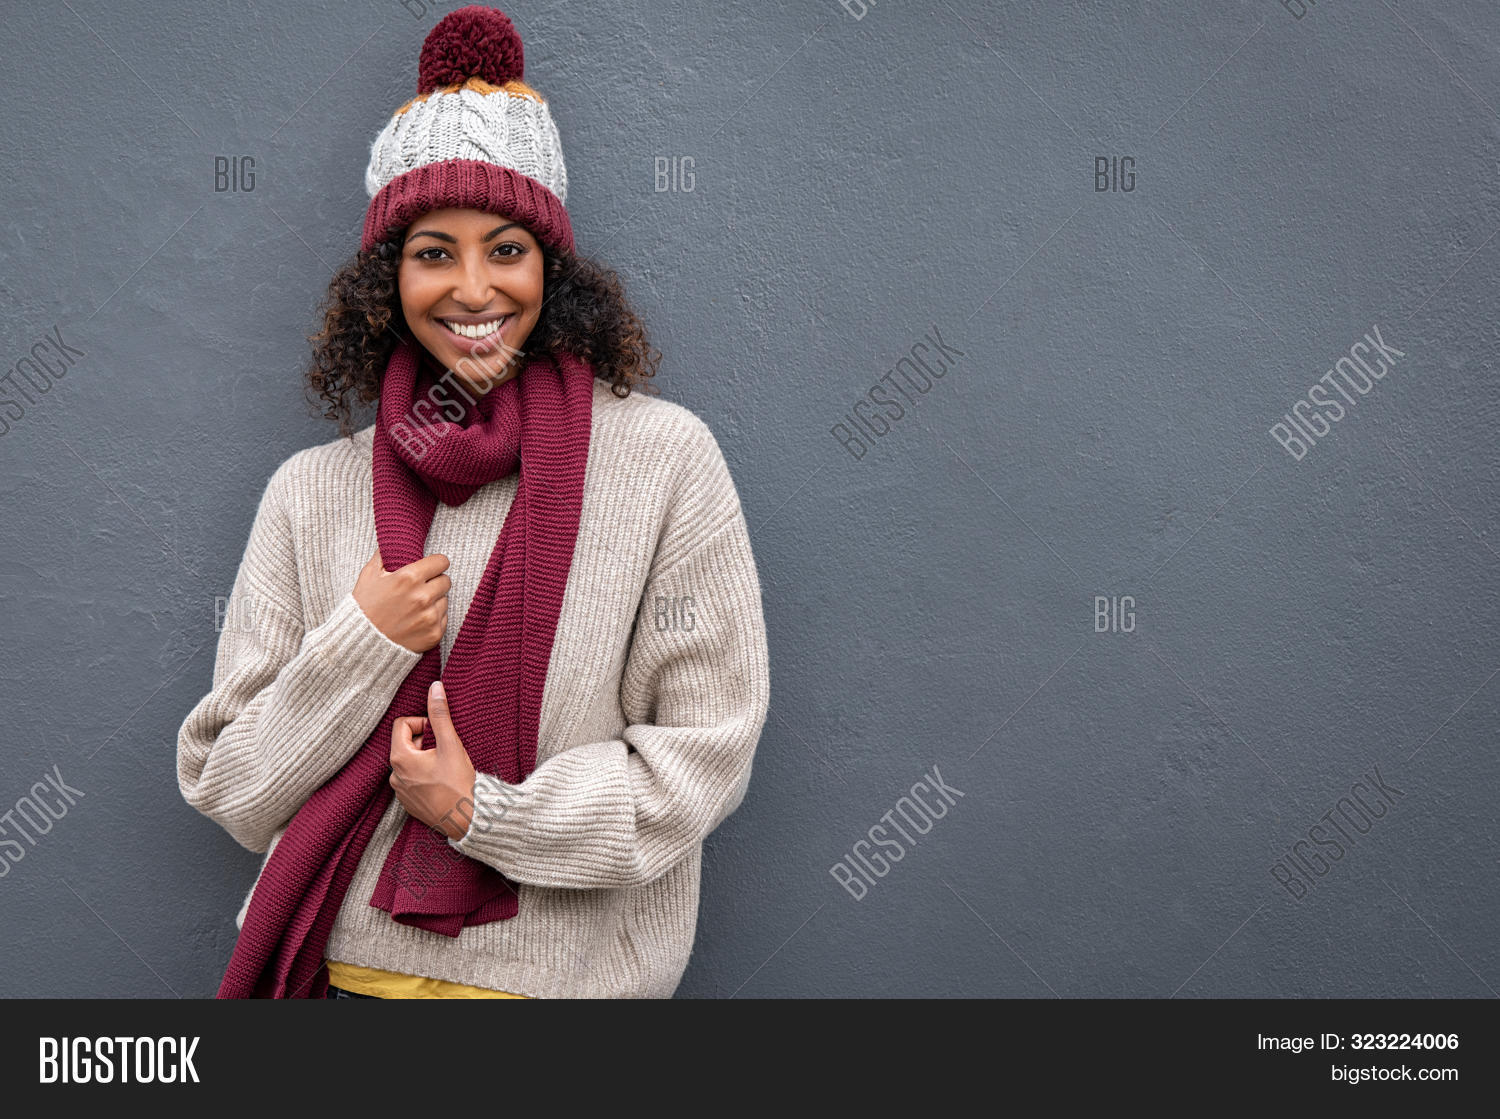 african,african american,african woman,american,attractive woman,background,beautiful,black,cap,casual,cheerful,christmas,cloth,cold,copy space,cozy,expression,fall,fashion,fashionable,girl,gray,gray wall,grey background,happiness,happy,holiday,joy,knitted hat,knitted scarf,looking,looking at camera,portrait,scarf,season,smile,standing,stylish,sweater,wall,warm,warm clothes,warm sweater,winter,winter clothes,winter holiday,woman,woolen,young